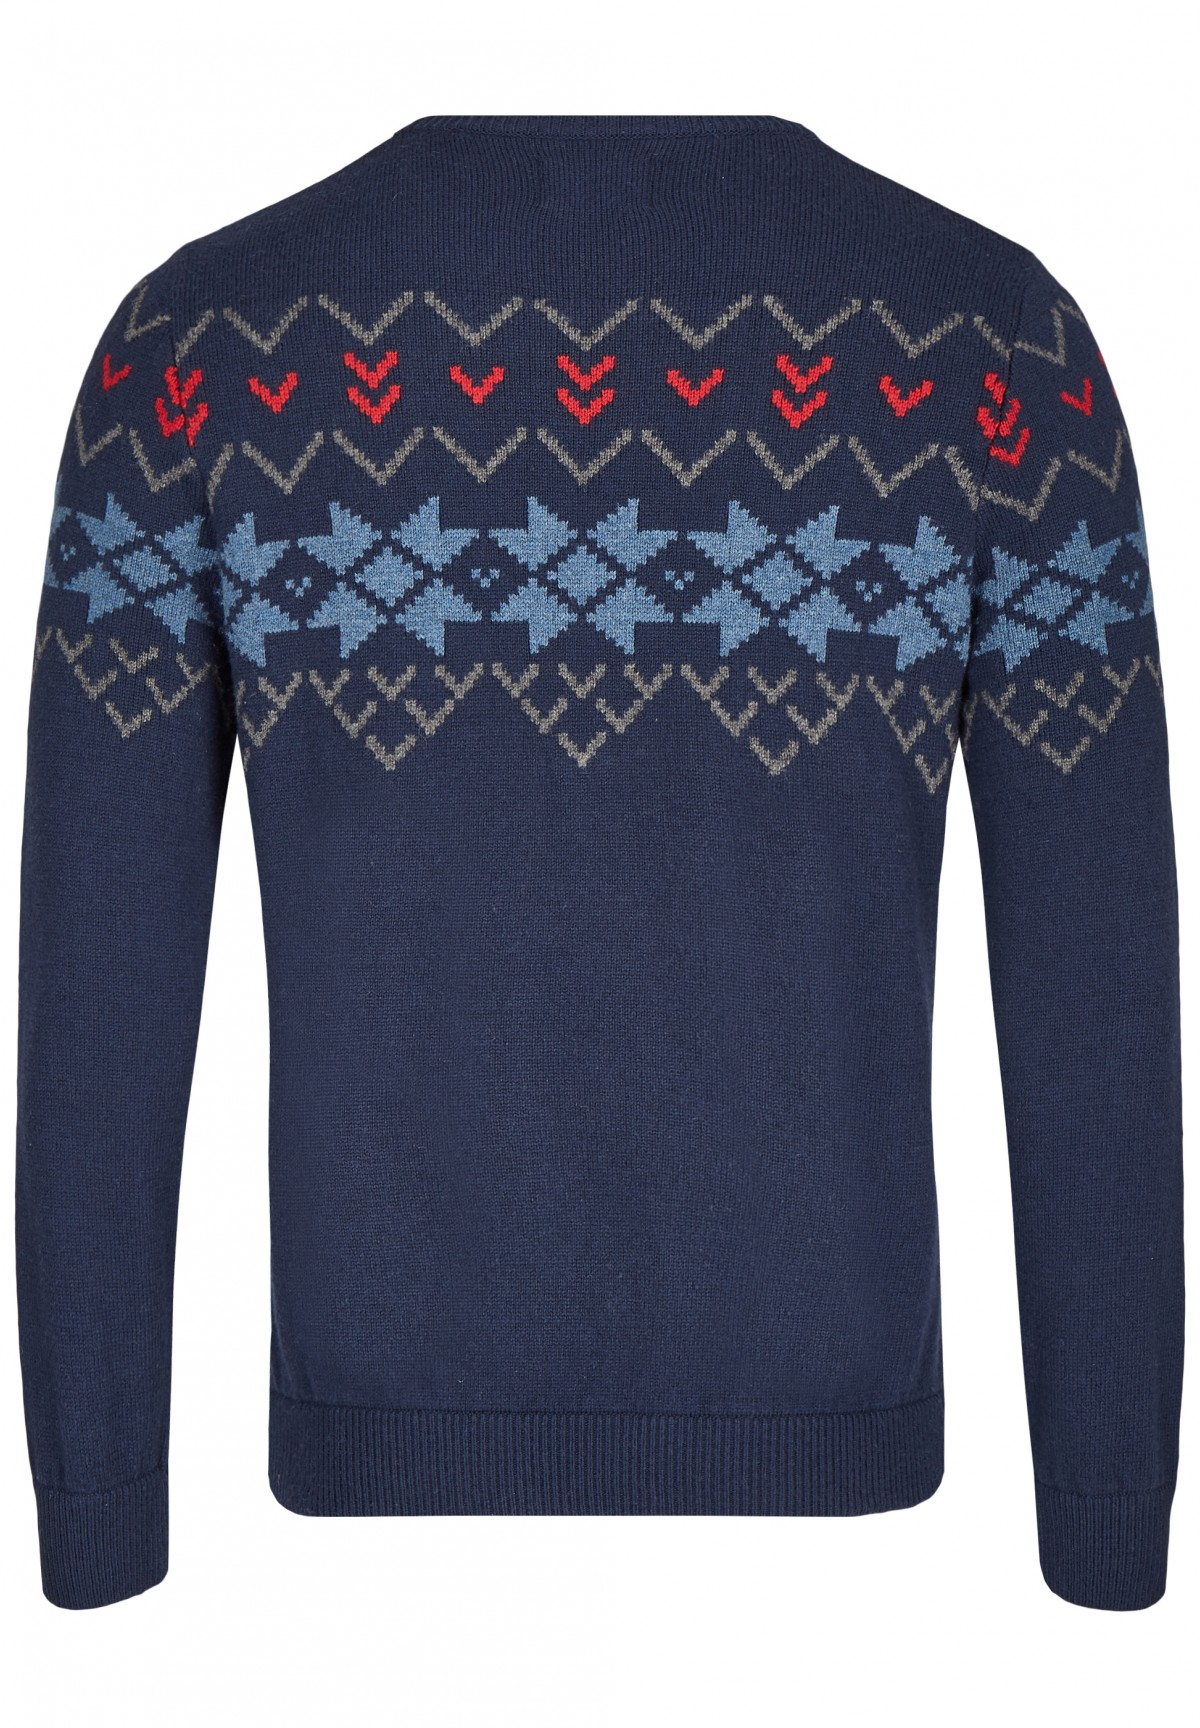 Pullover im Norweger Look / Pullover im Norweger Look